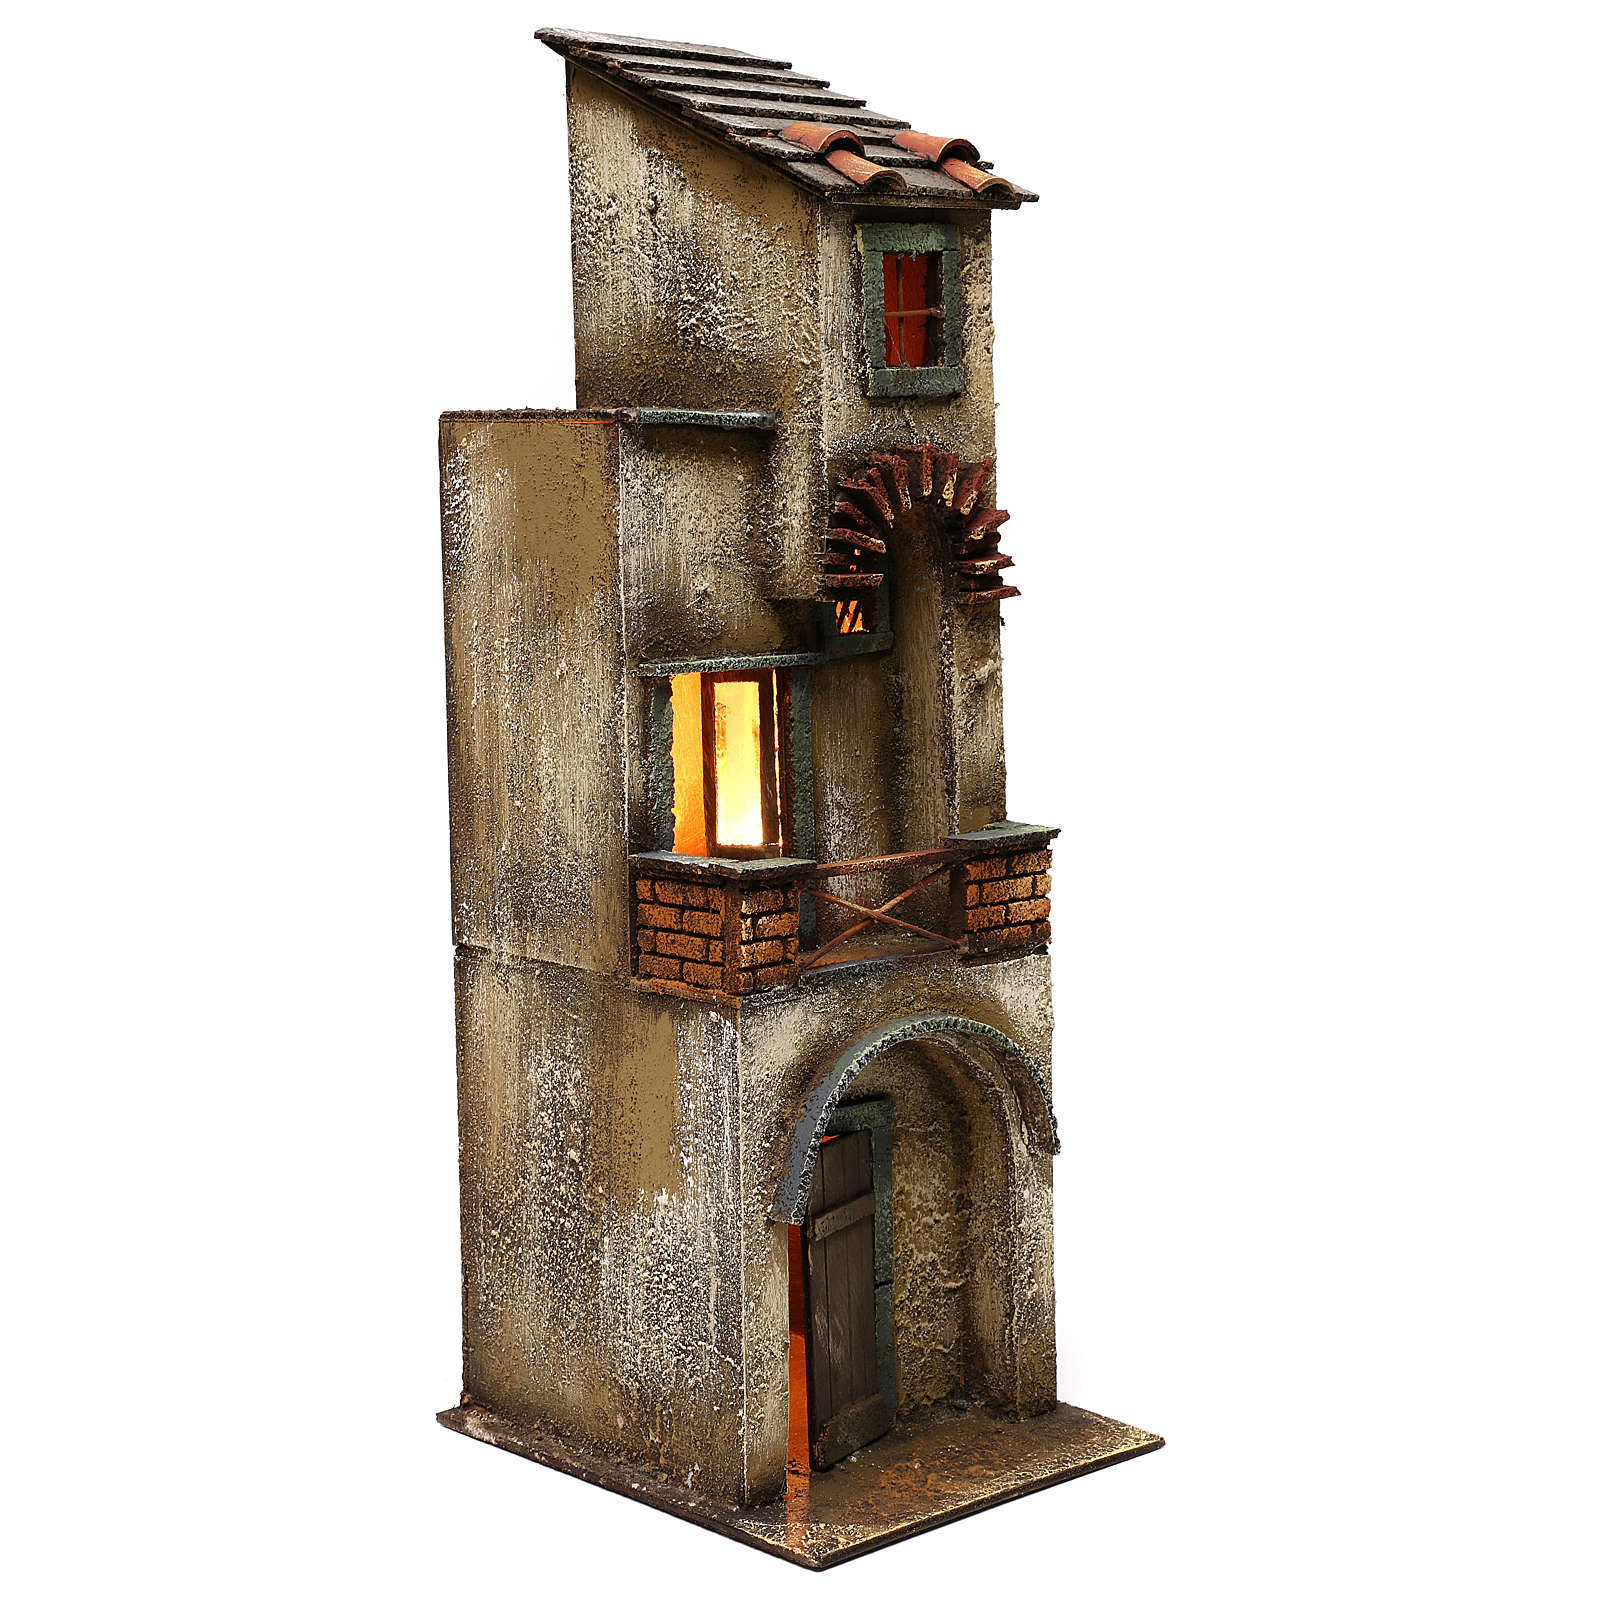 Neapolitan Nativity scene setting, two floors house 55x20x20 cm 4